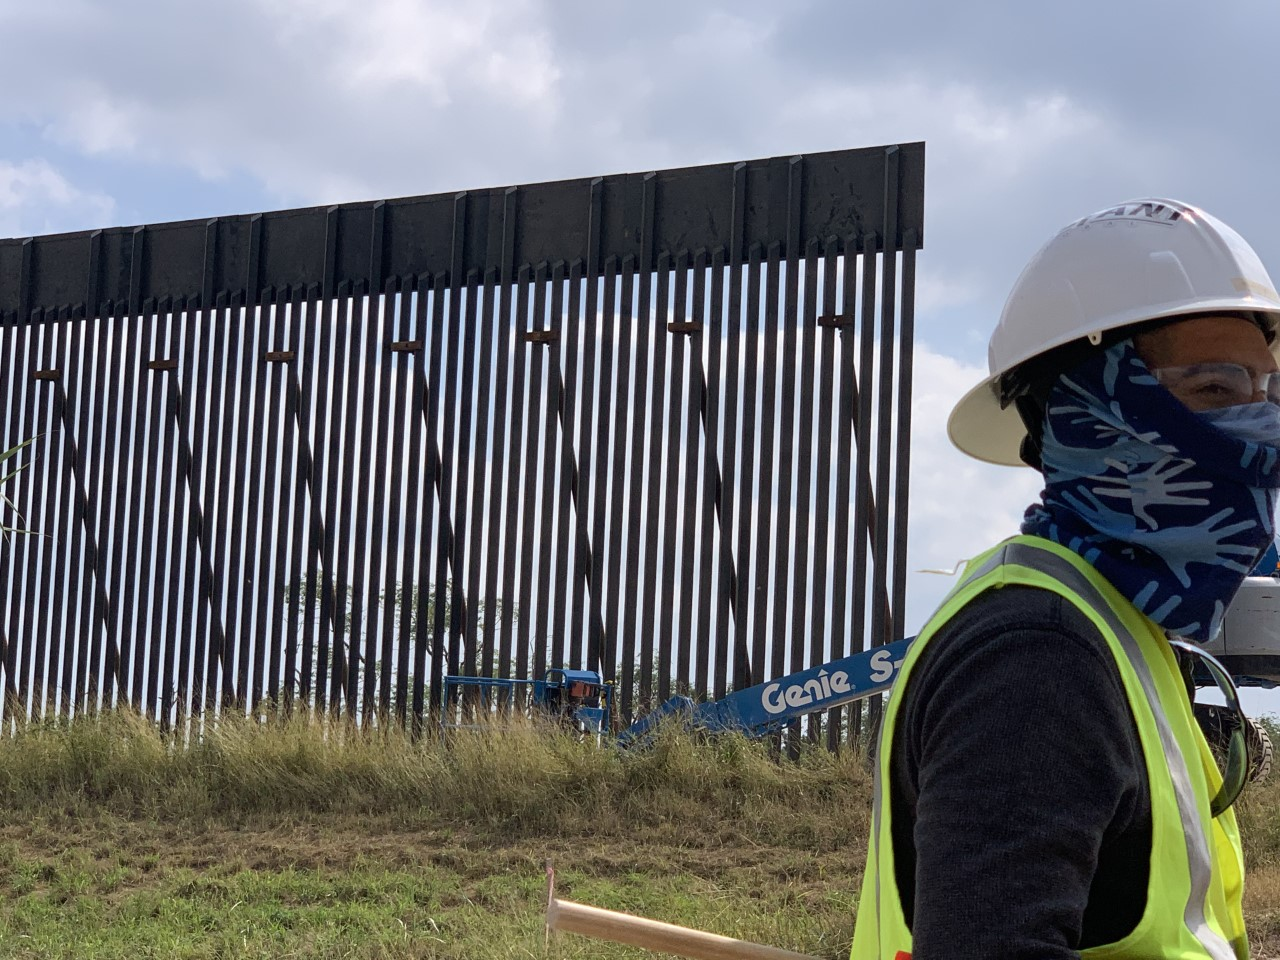 Border wall construction forging ahead with Biden months away from taking office